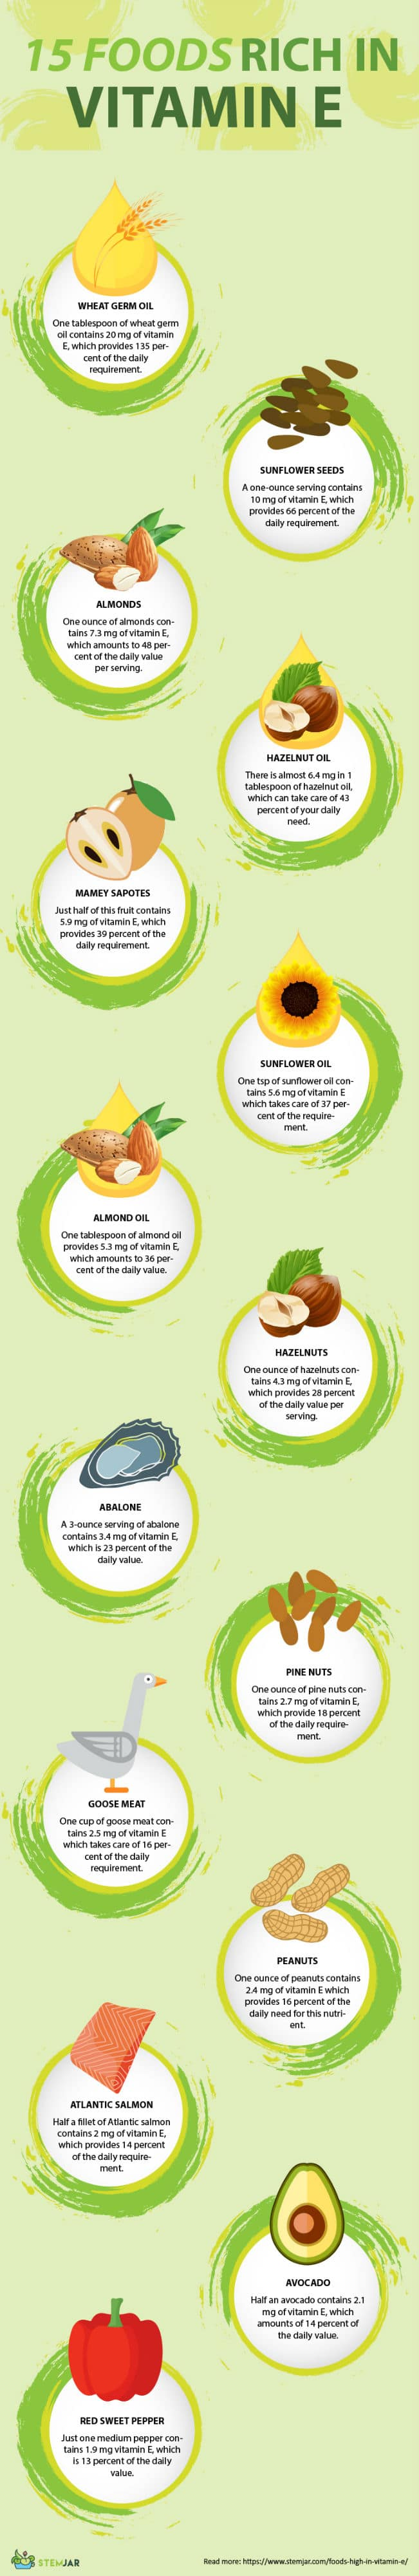 fodds high in Vitamin E infographic